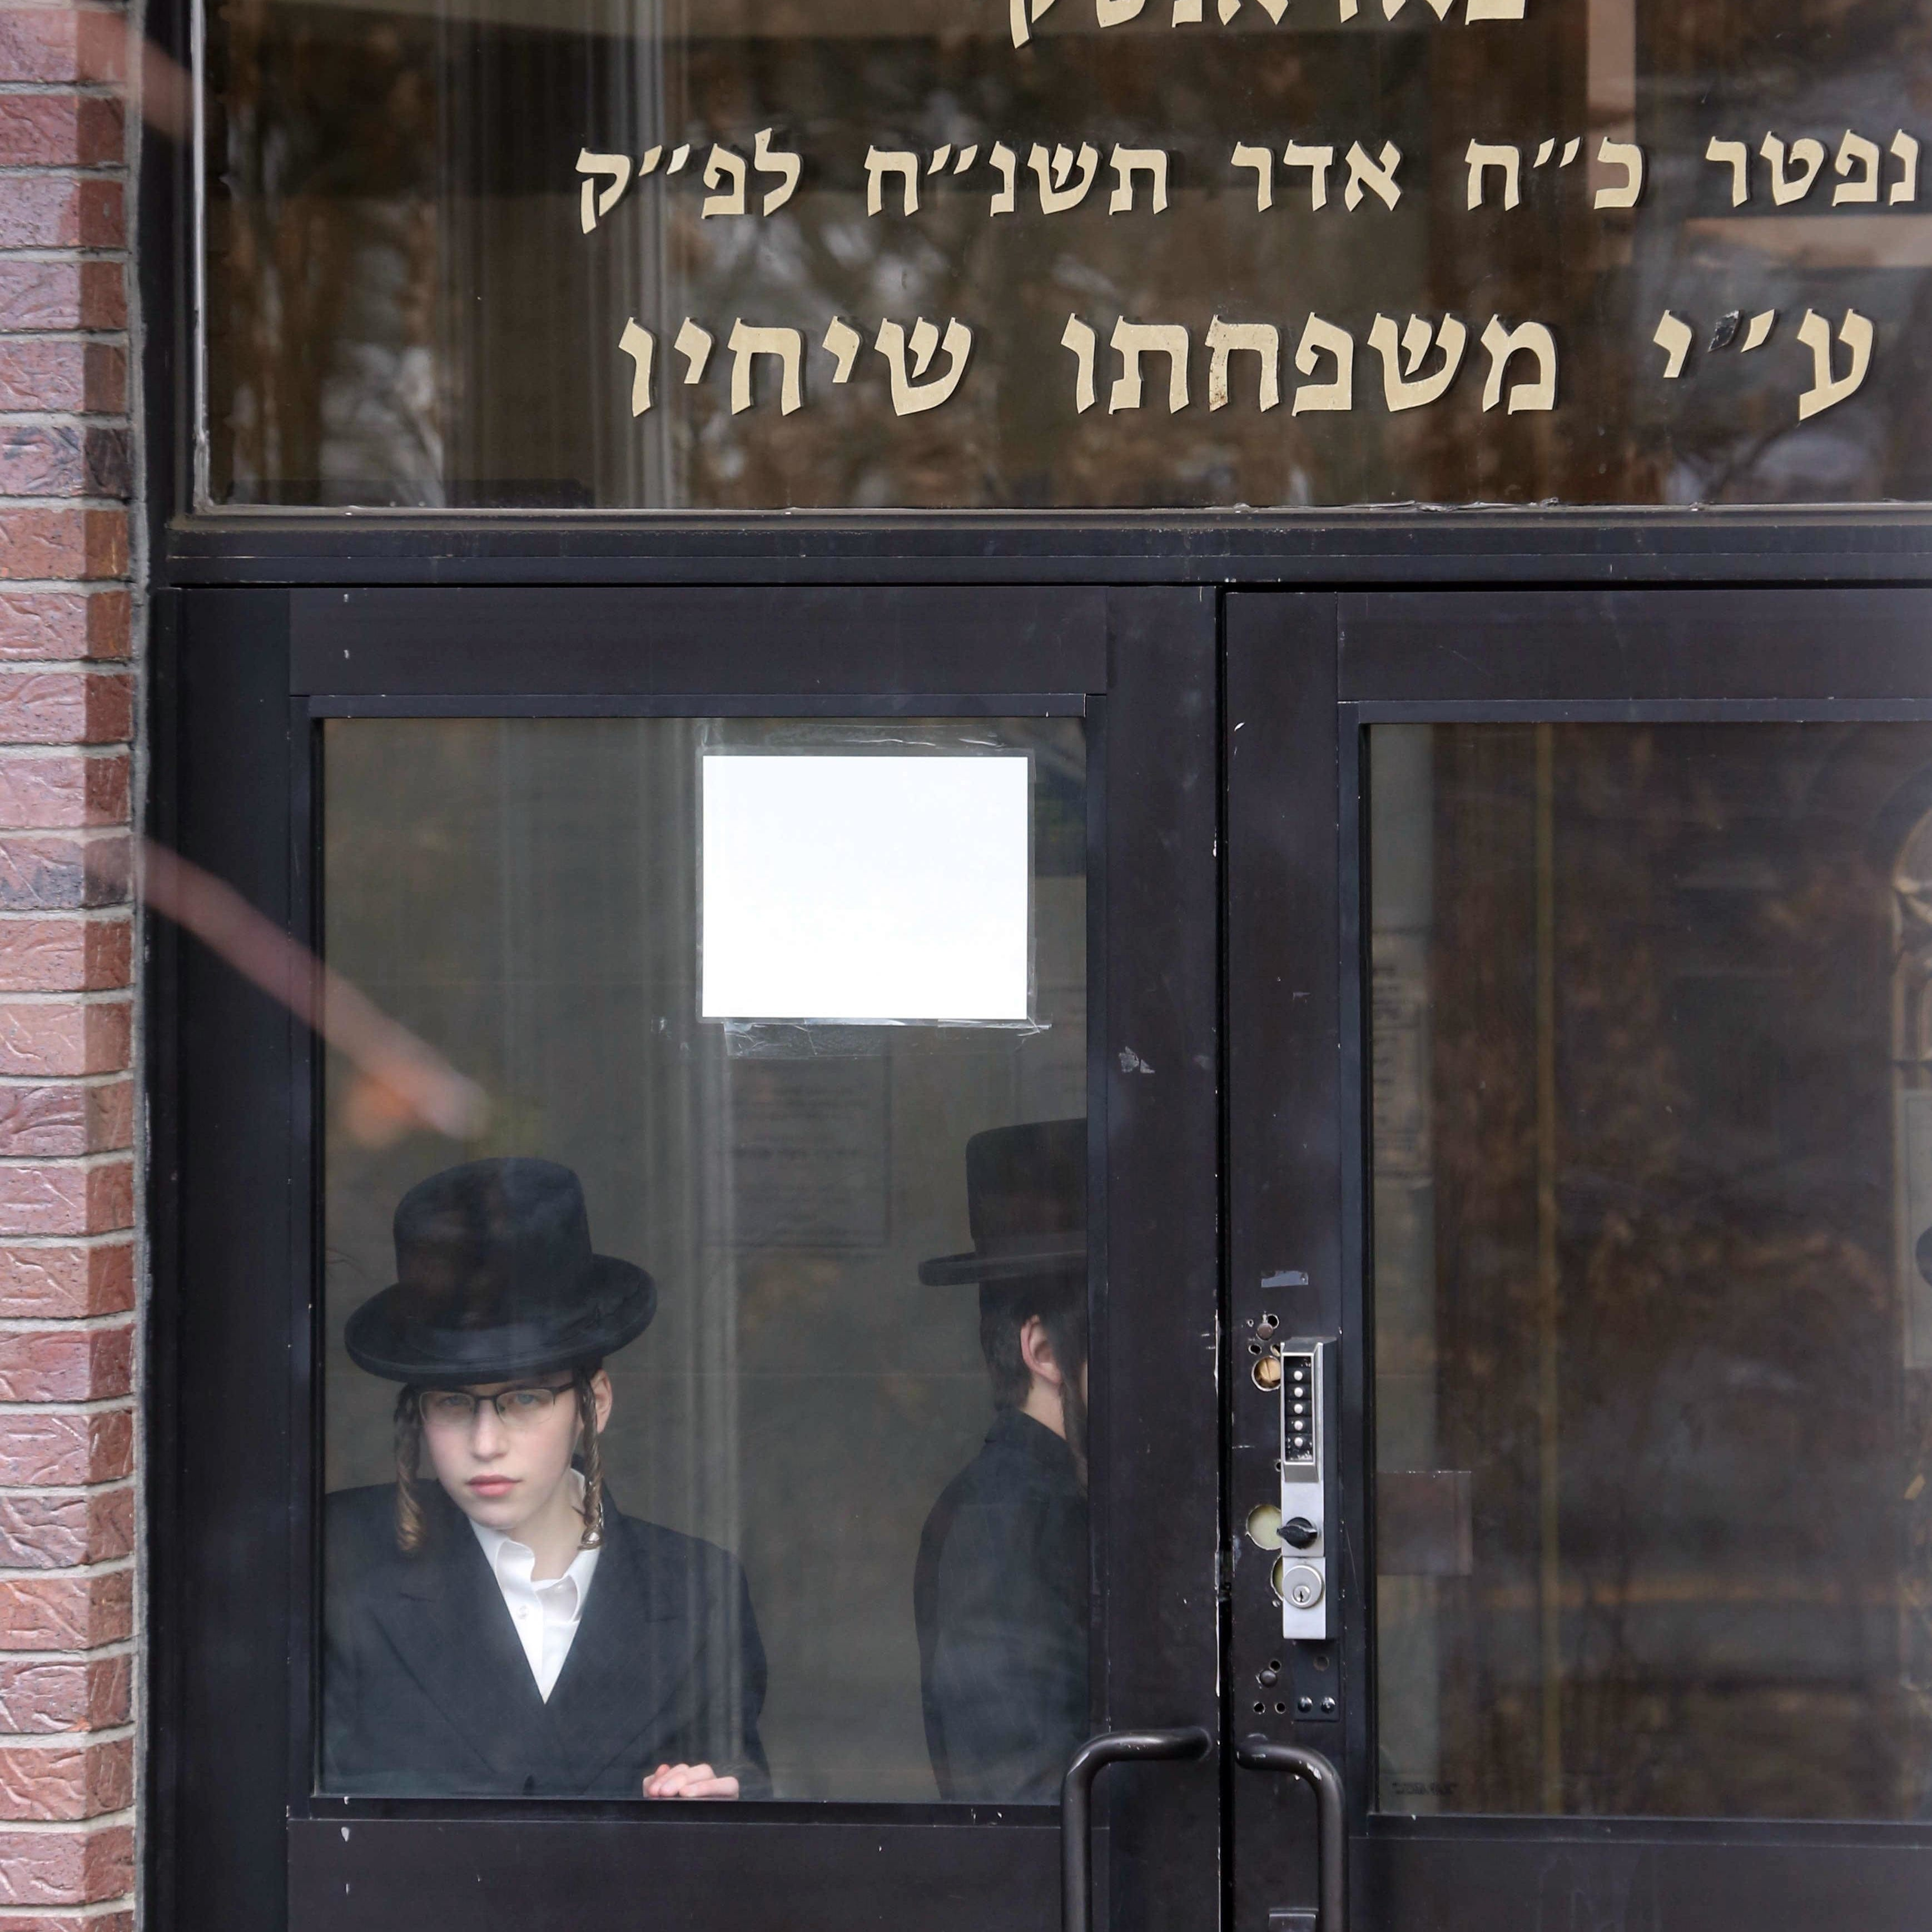 YAFFED'S yeshiva oversight suit dismissed; federal court cites lack of 'standing'